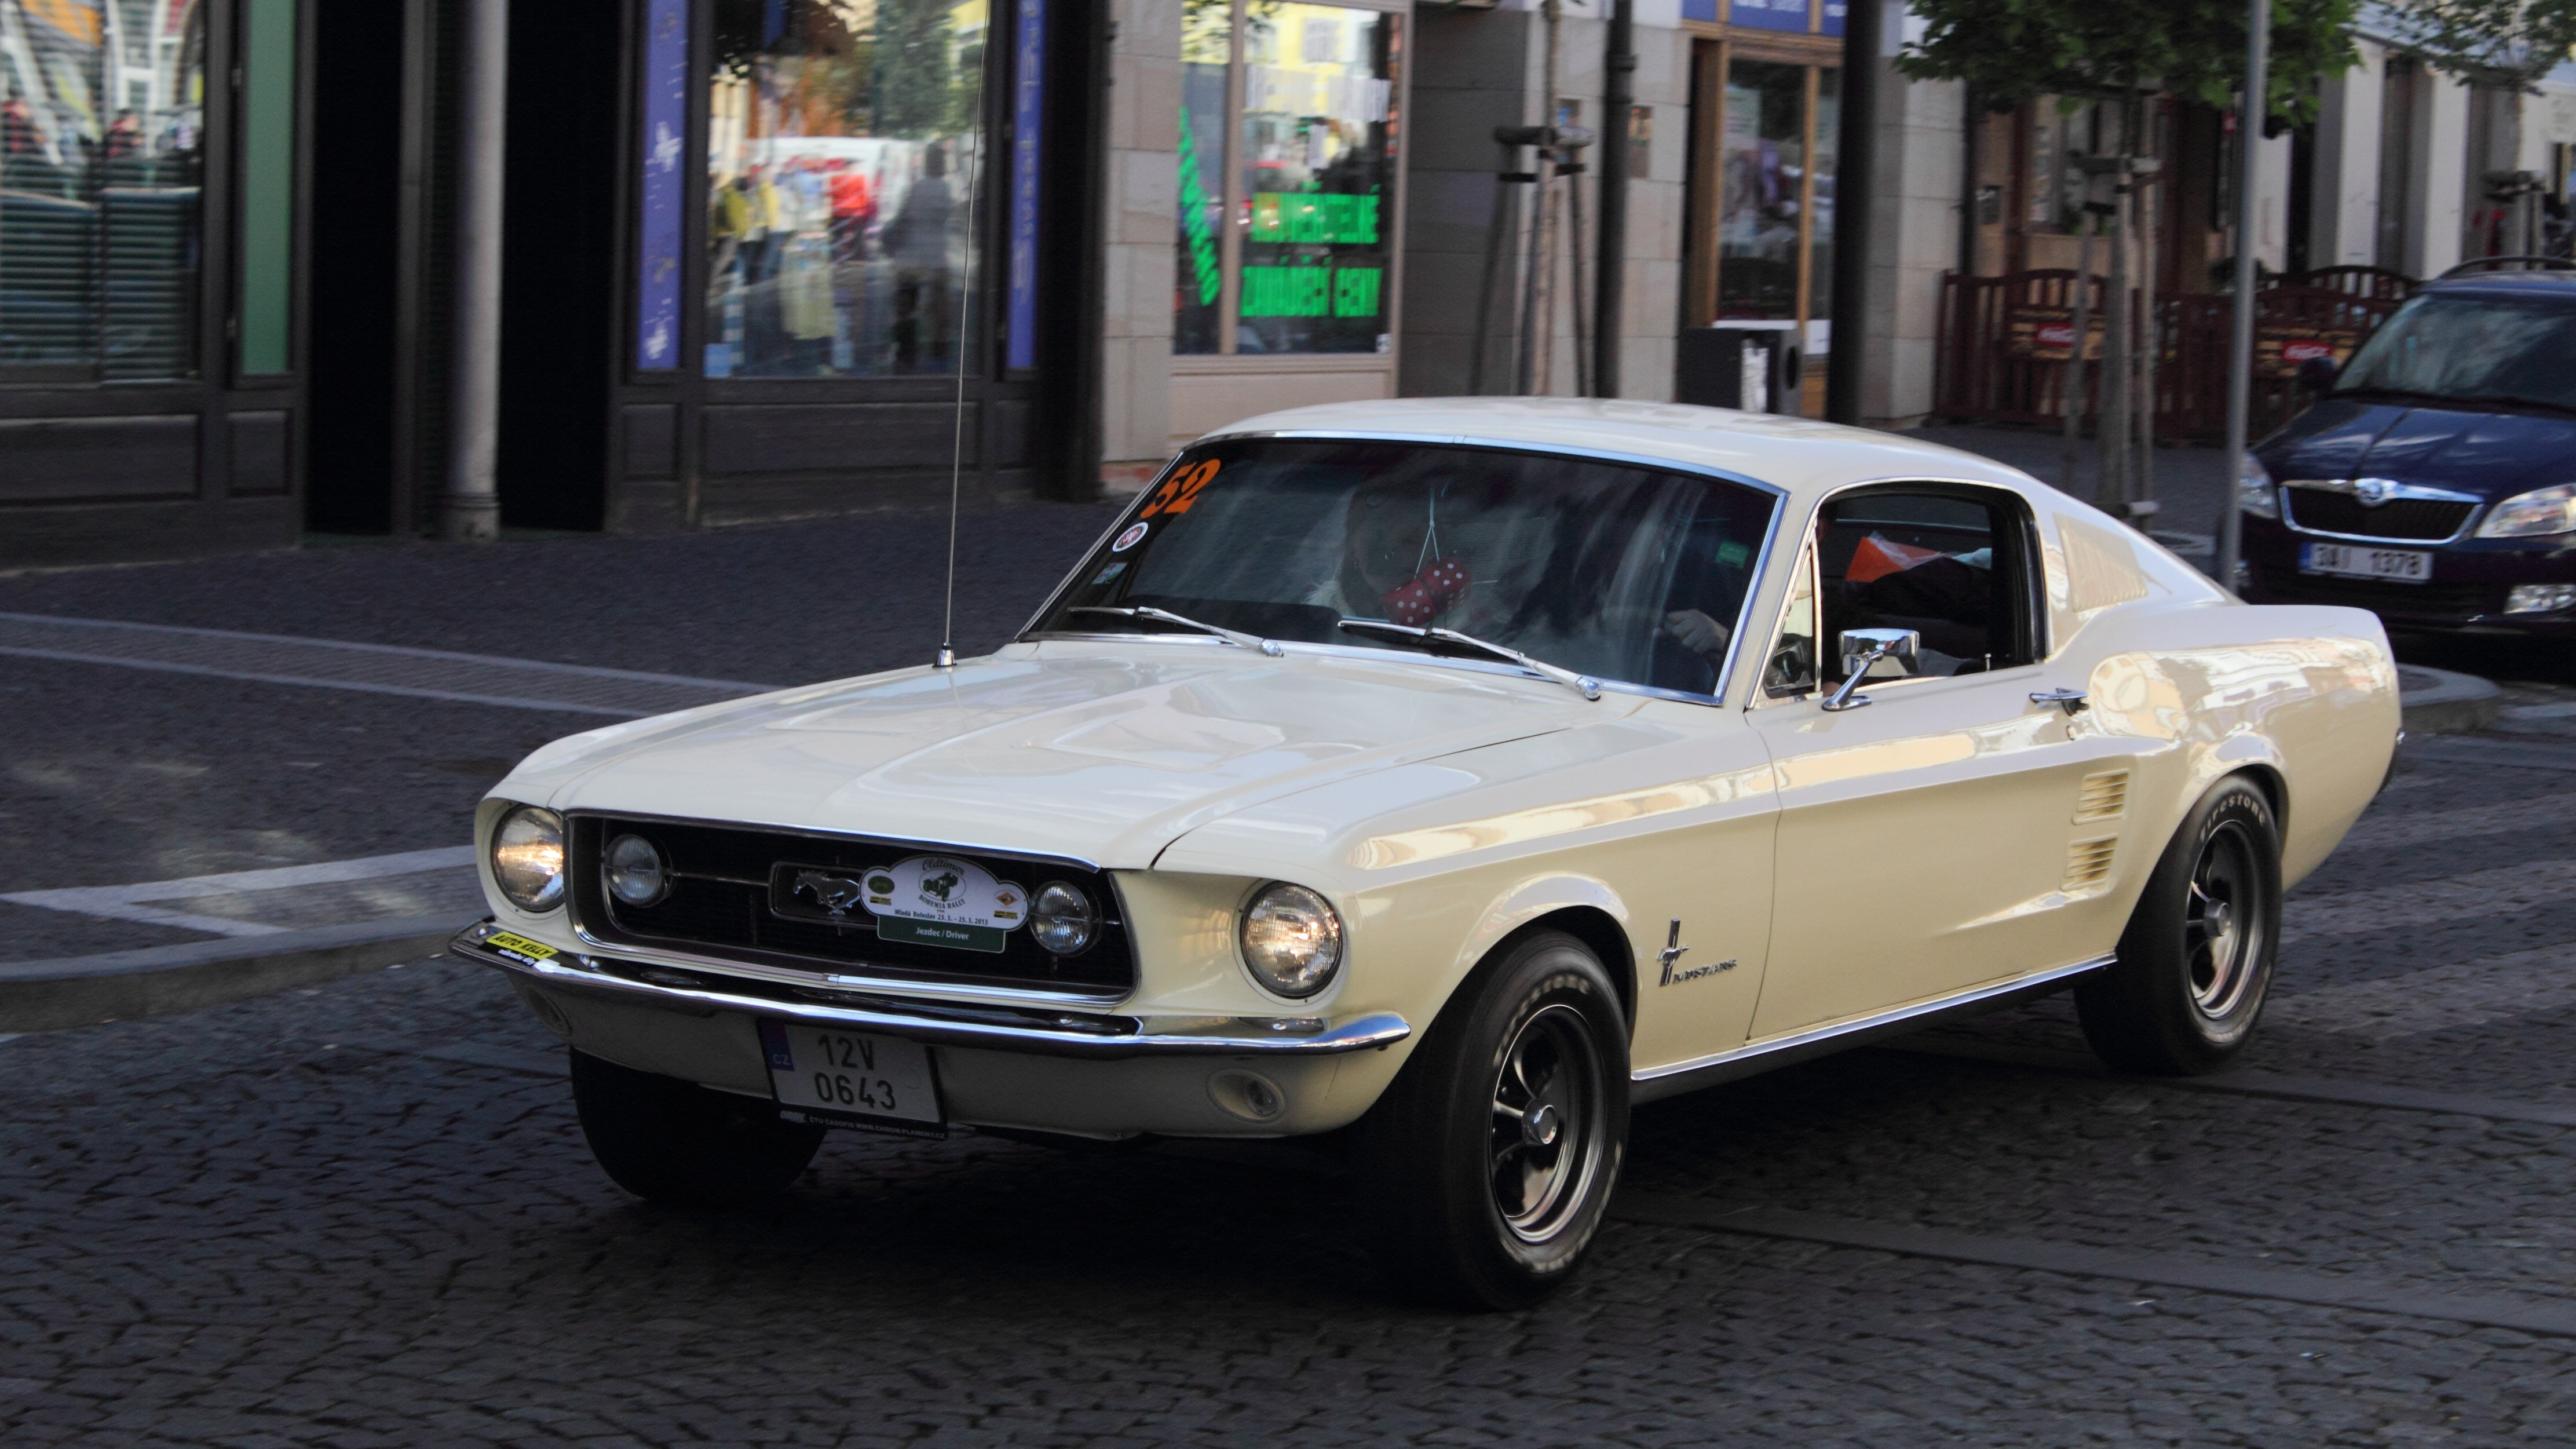 file ford mustang fastback 2013 oldtimer bohemia rally. Black Bedroom Furniture Sets. Home Design Ideas